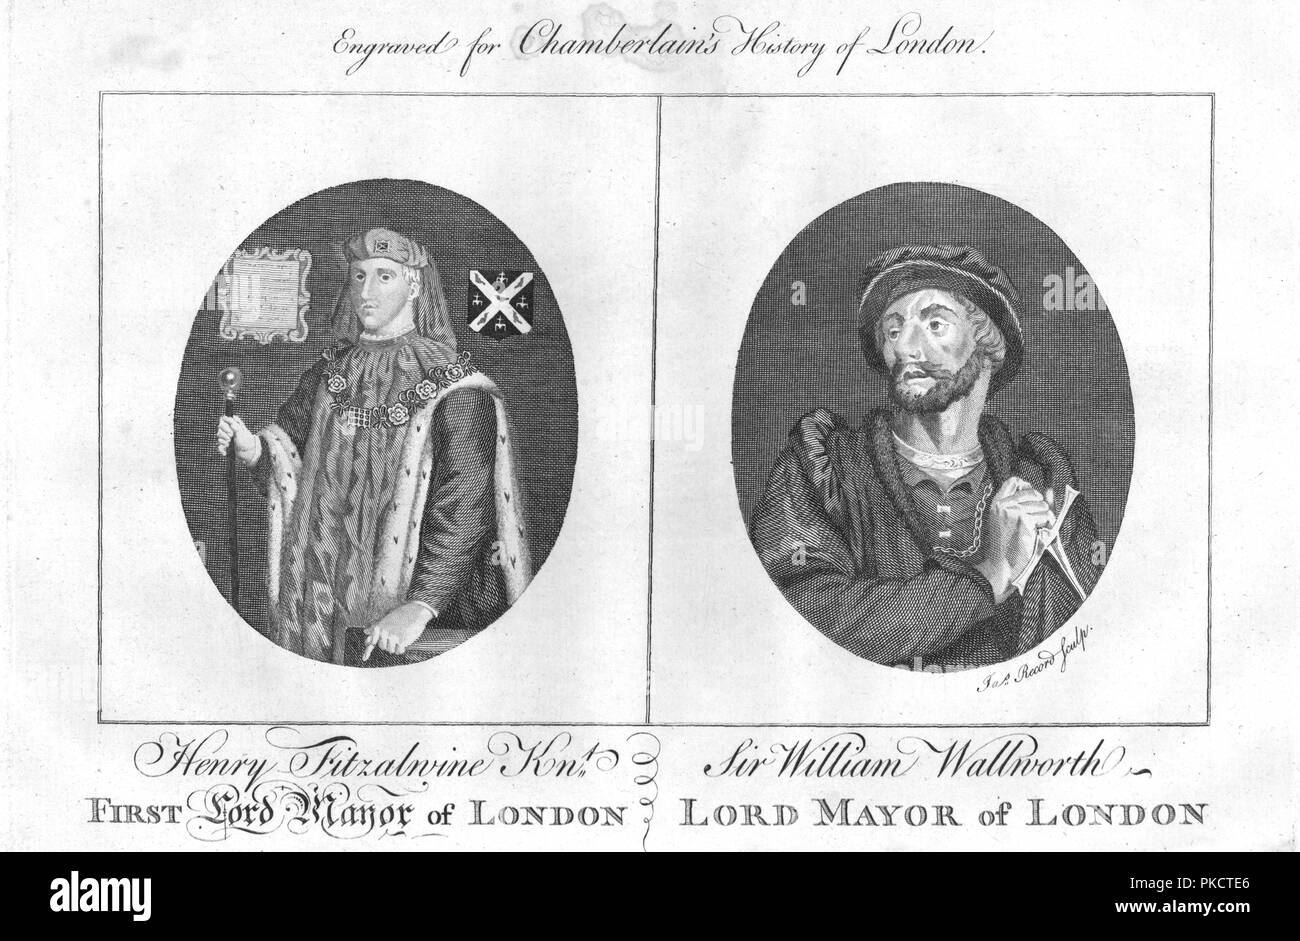 Lord Mayors of London, (c1784). Henry fitz Ailwin de Londonstane (c1135-1212) served as the first Mayor of the City of London. Sir William Walworth (died 1385), was twice Lord Mayor of London, and is best known for killing Wat Tyler. From Chamberlain's History of London. - Stock Image